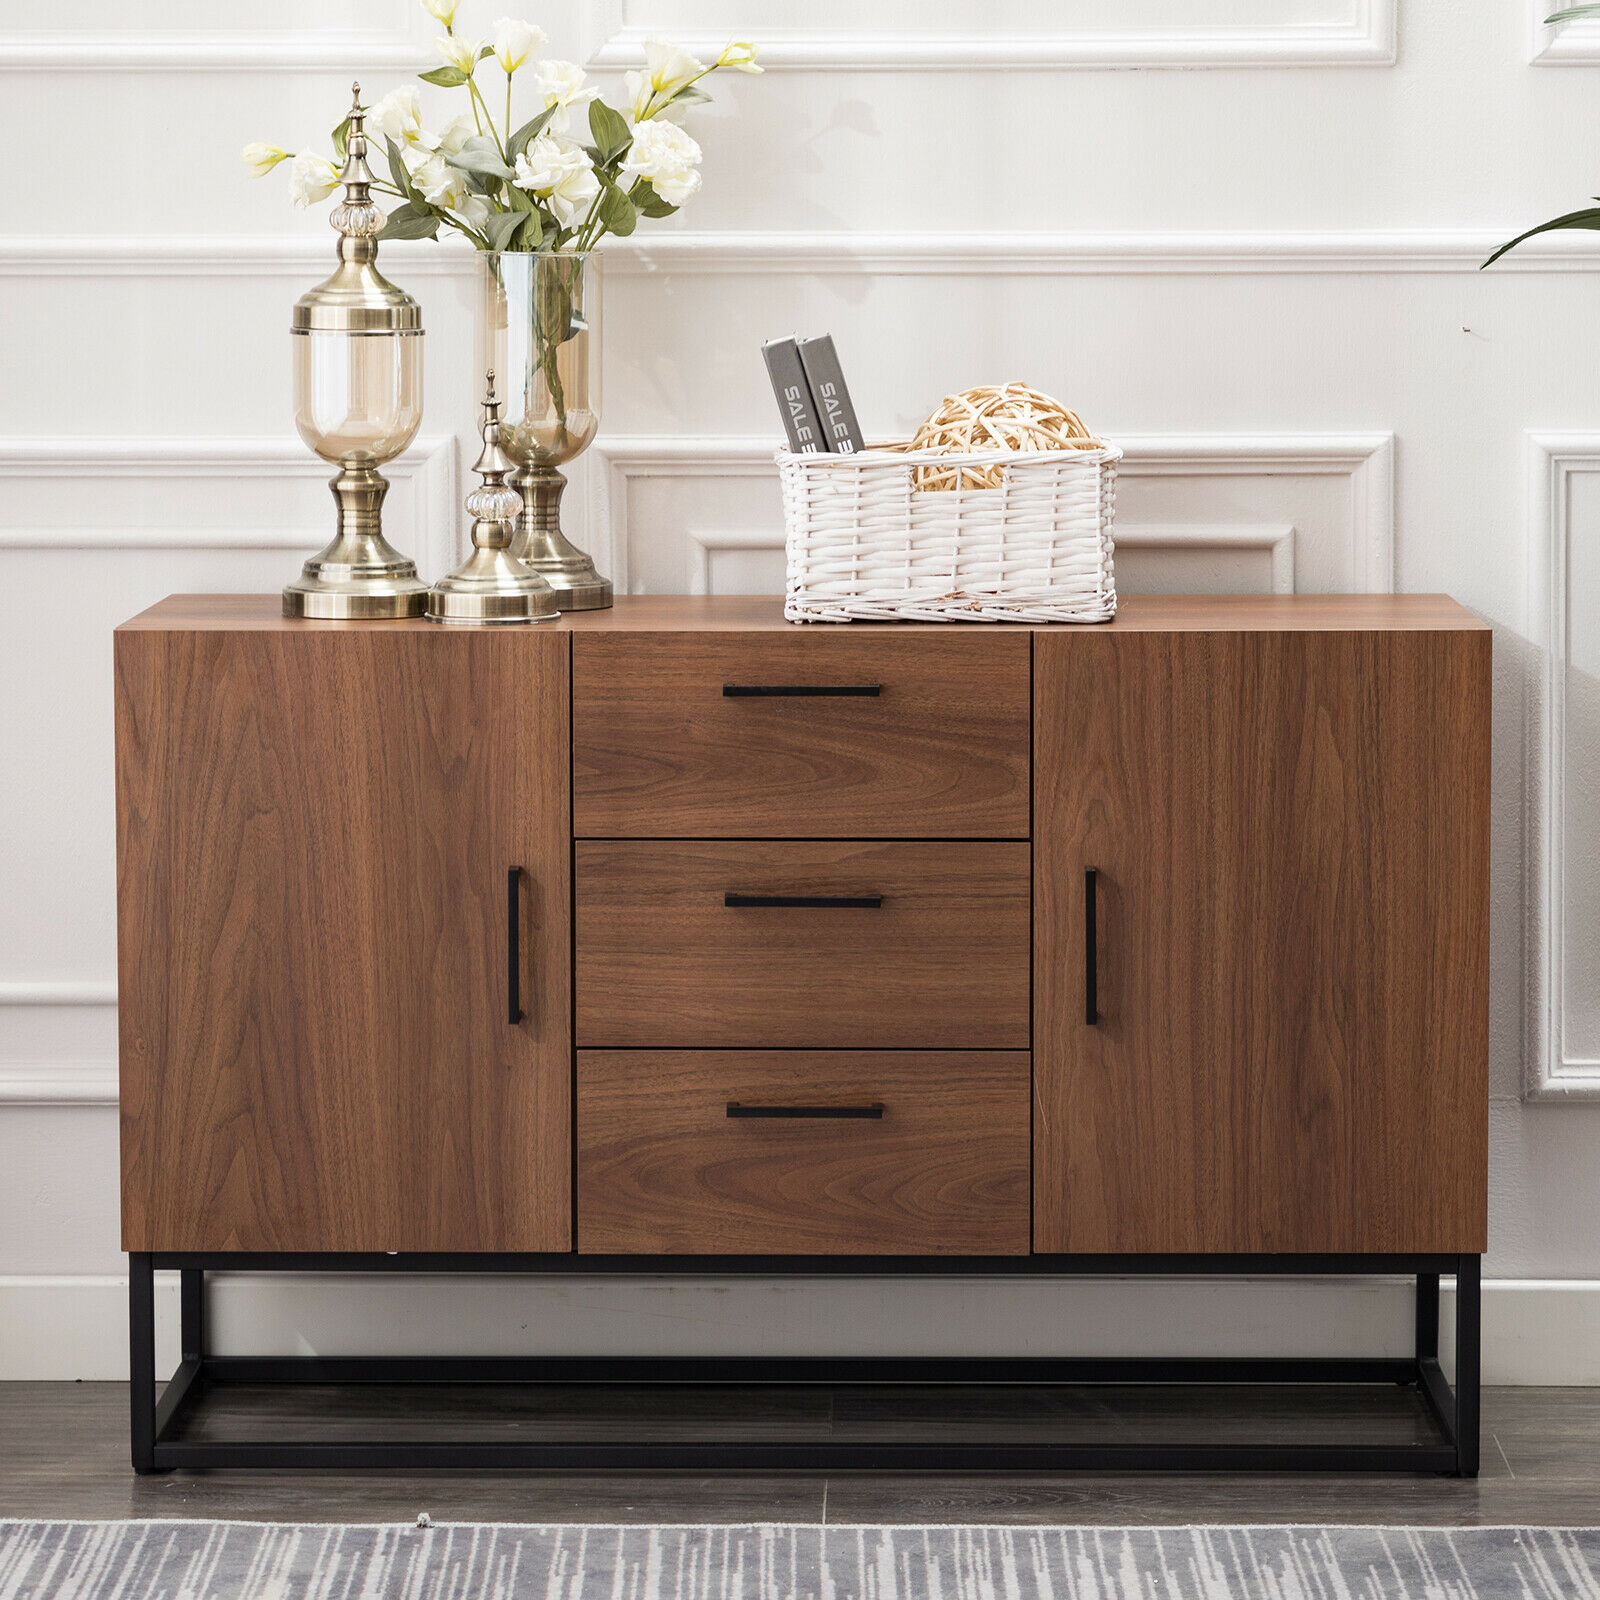 Picture of: Modern White Sideboard Storage Cabinet With Drawers Kitchen Console 2 Doors For Sale Online Ebay